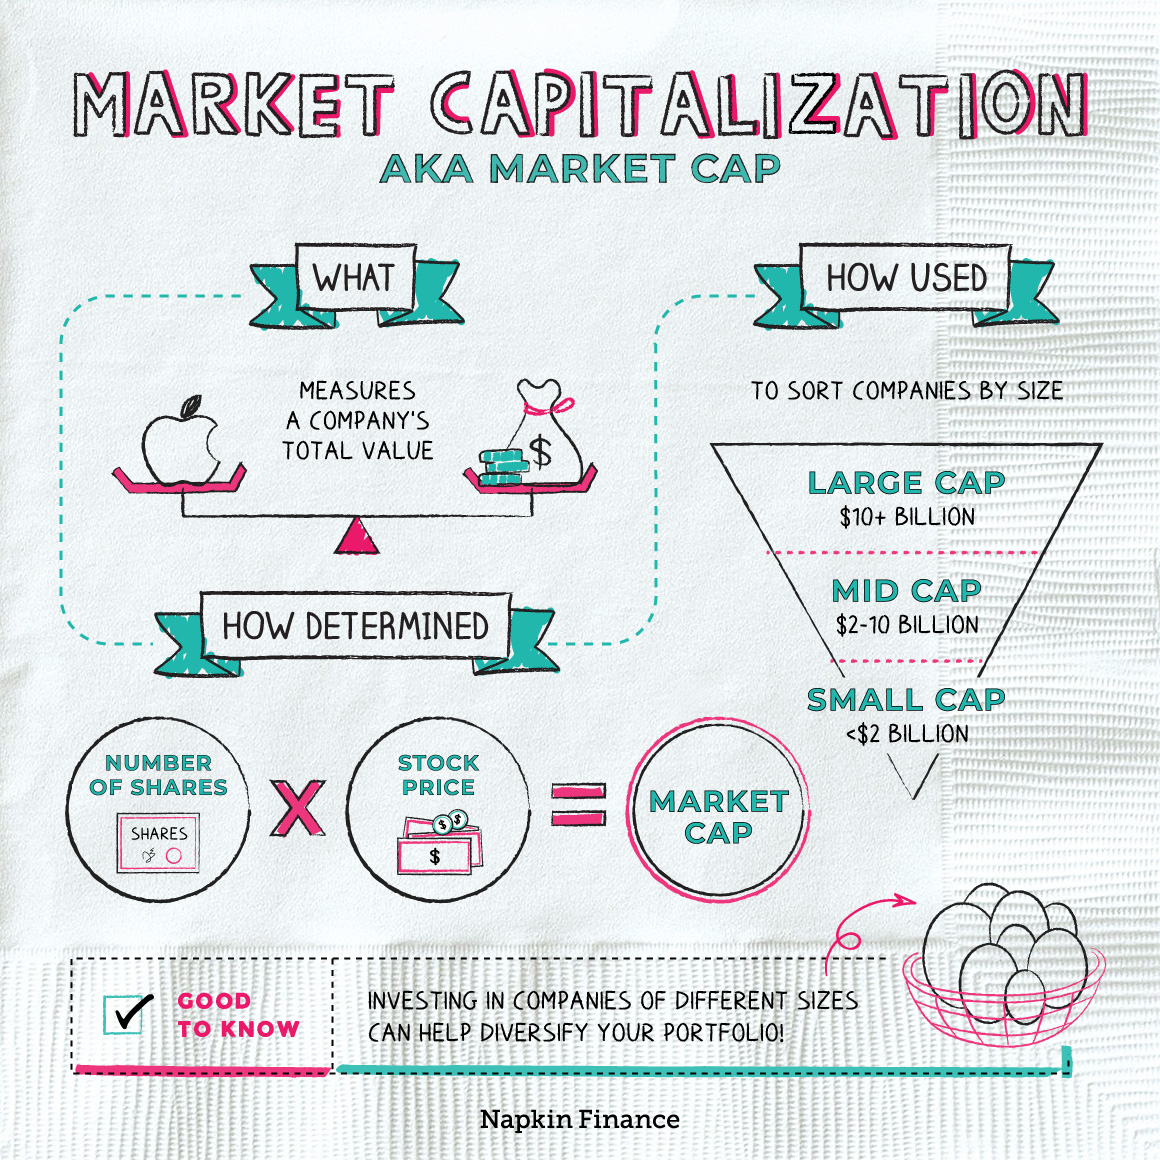 Market Capitalization